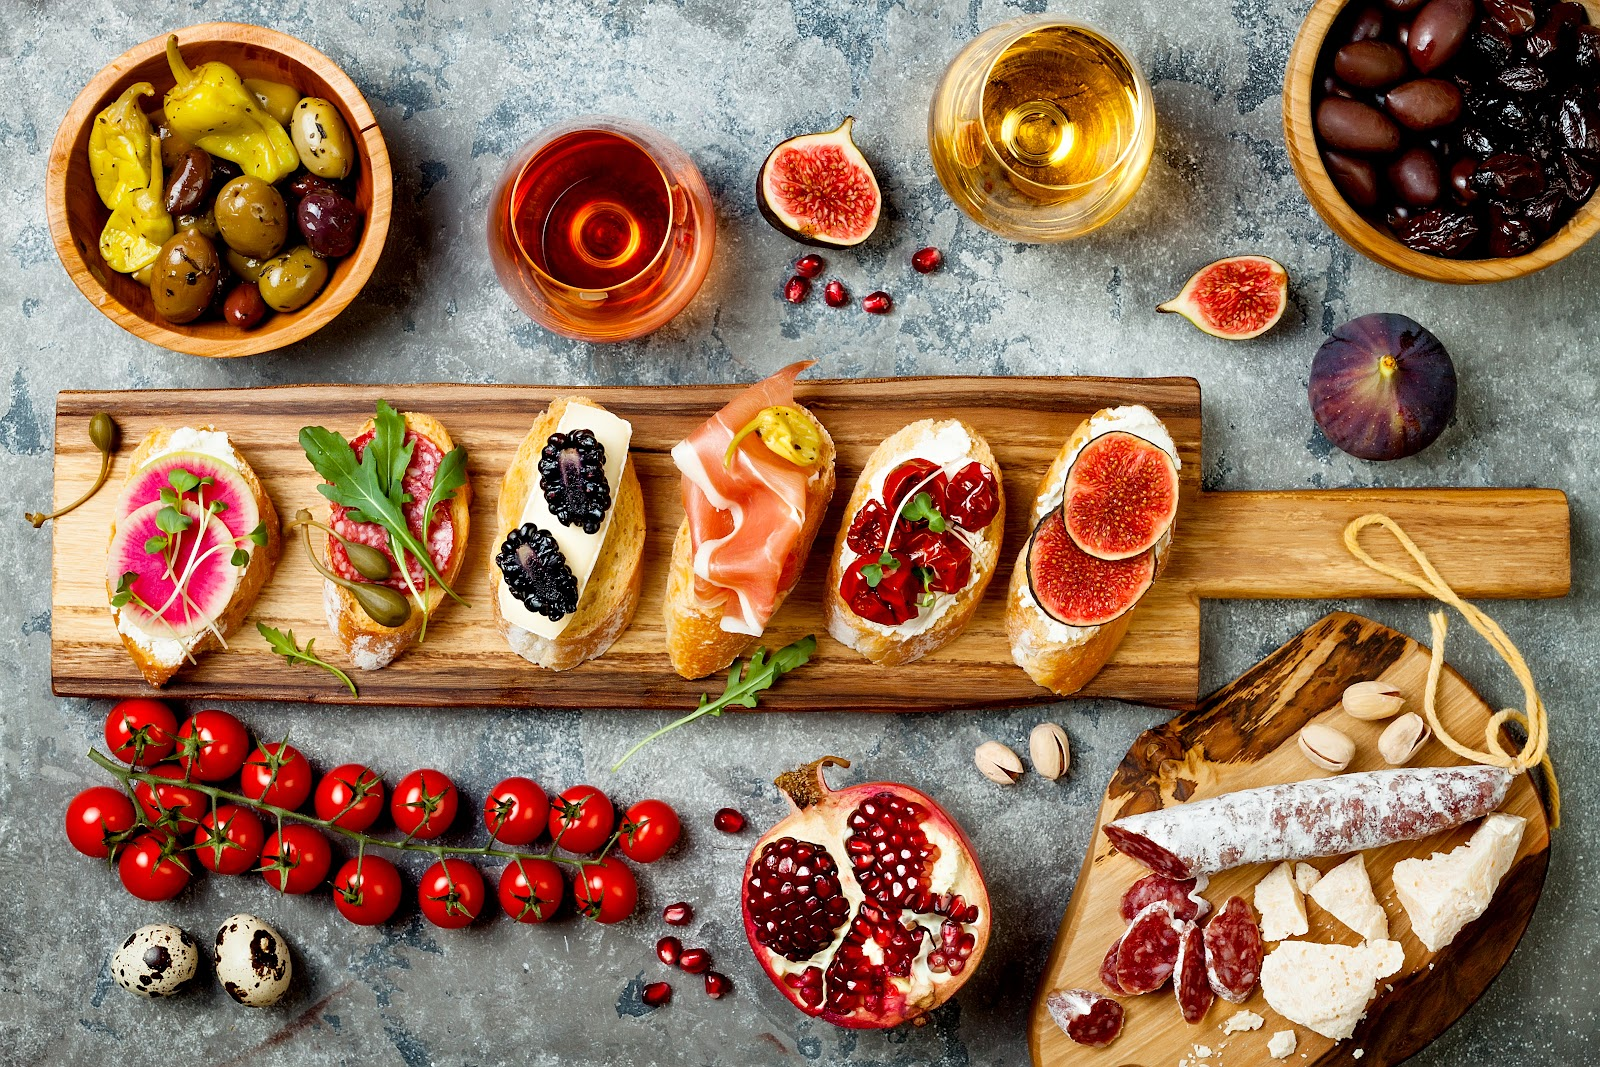 An image showing a variety of Spanish meats, tapas, and foods, all key elements of the Spanish lifestyle